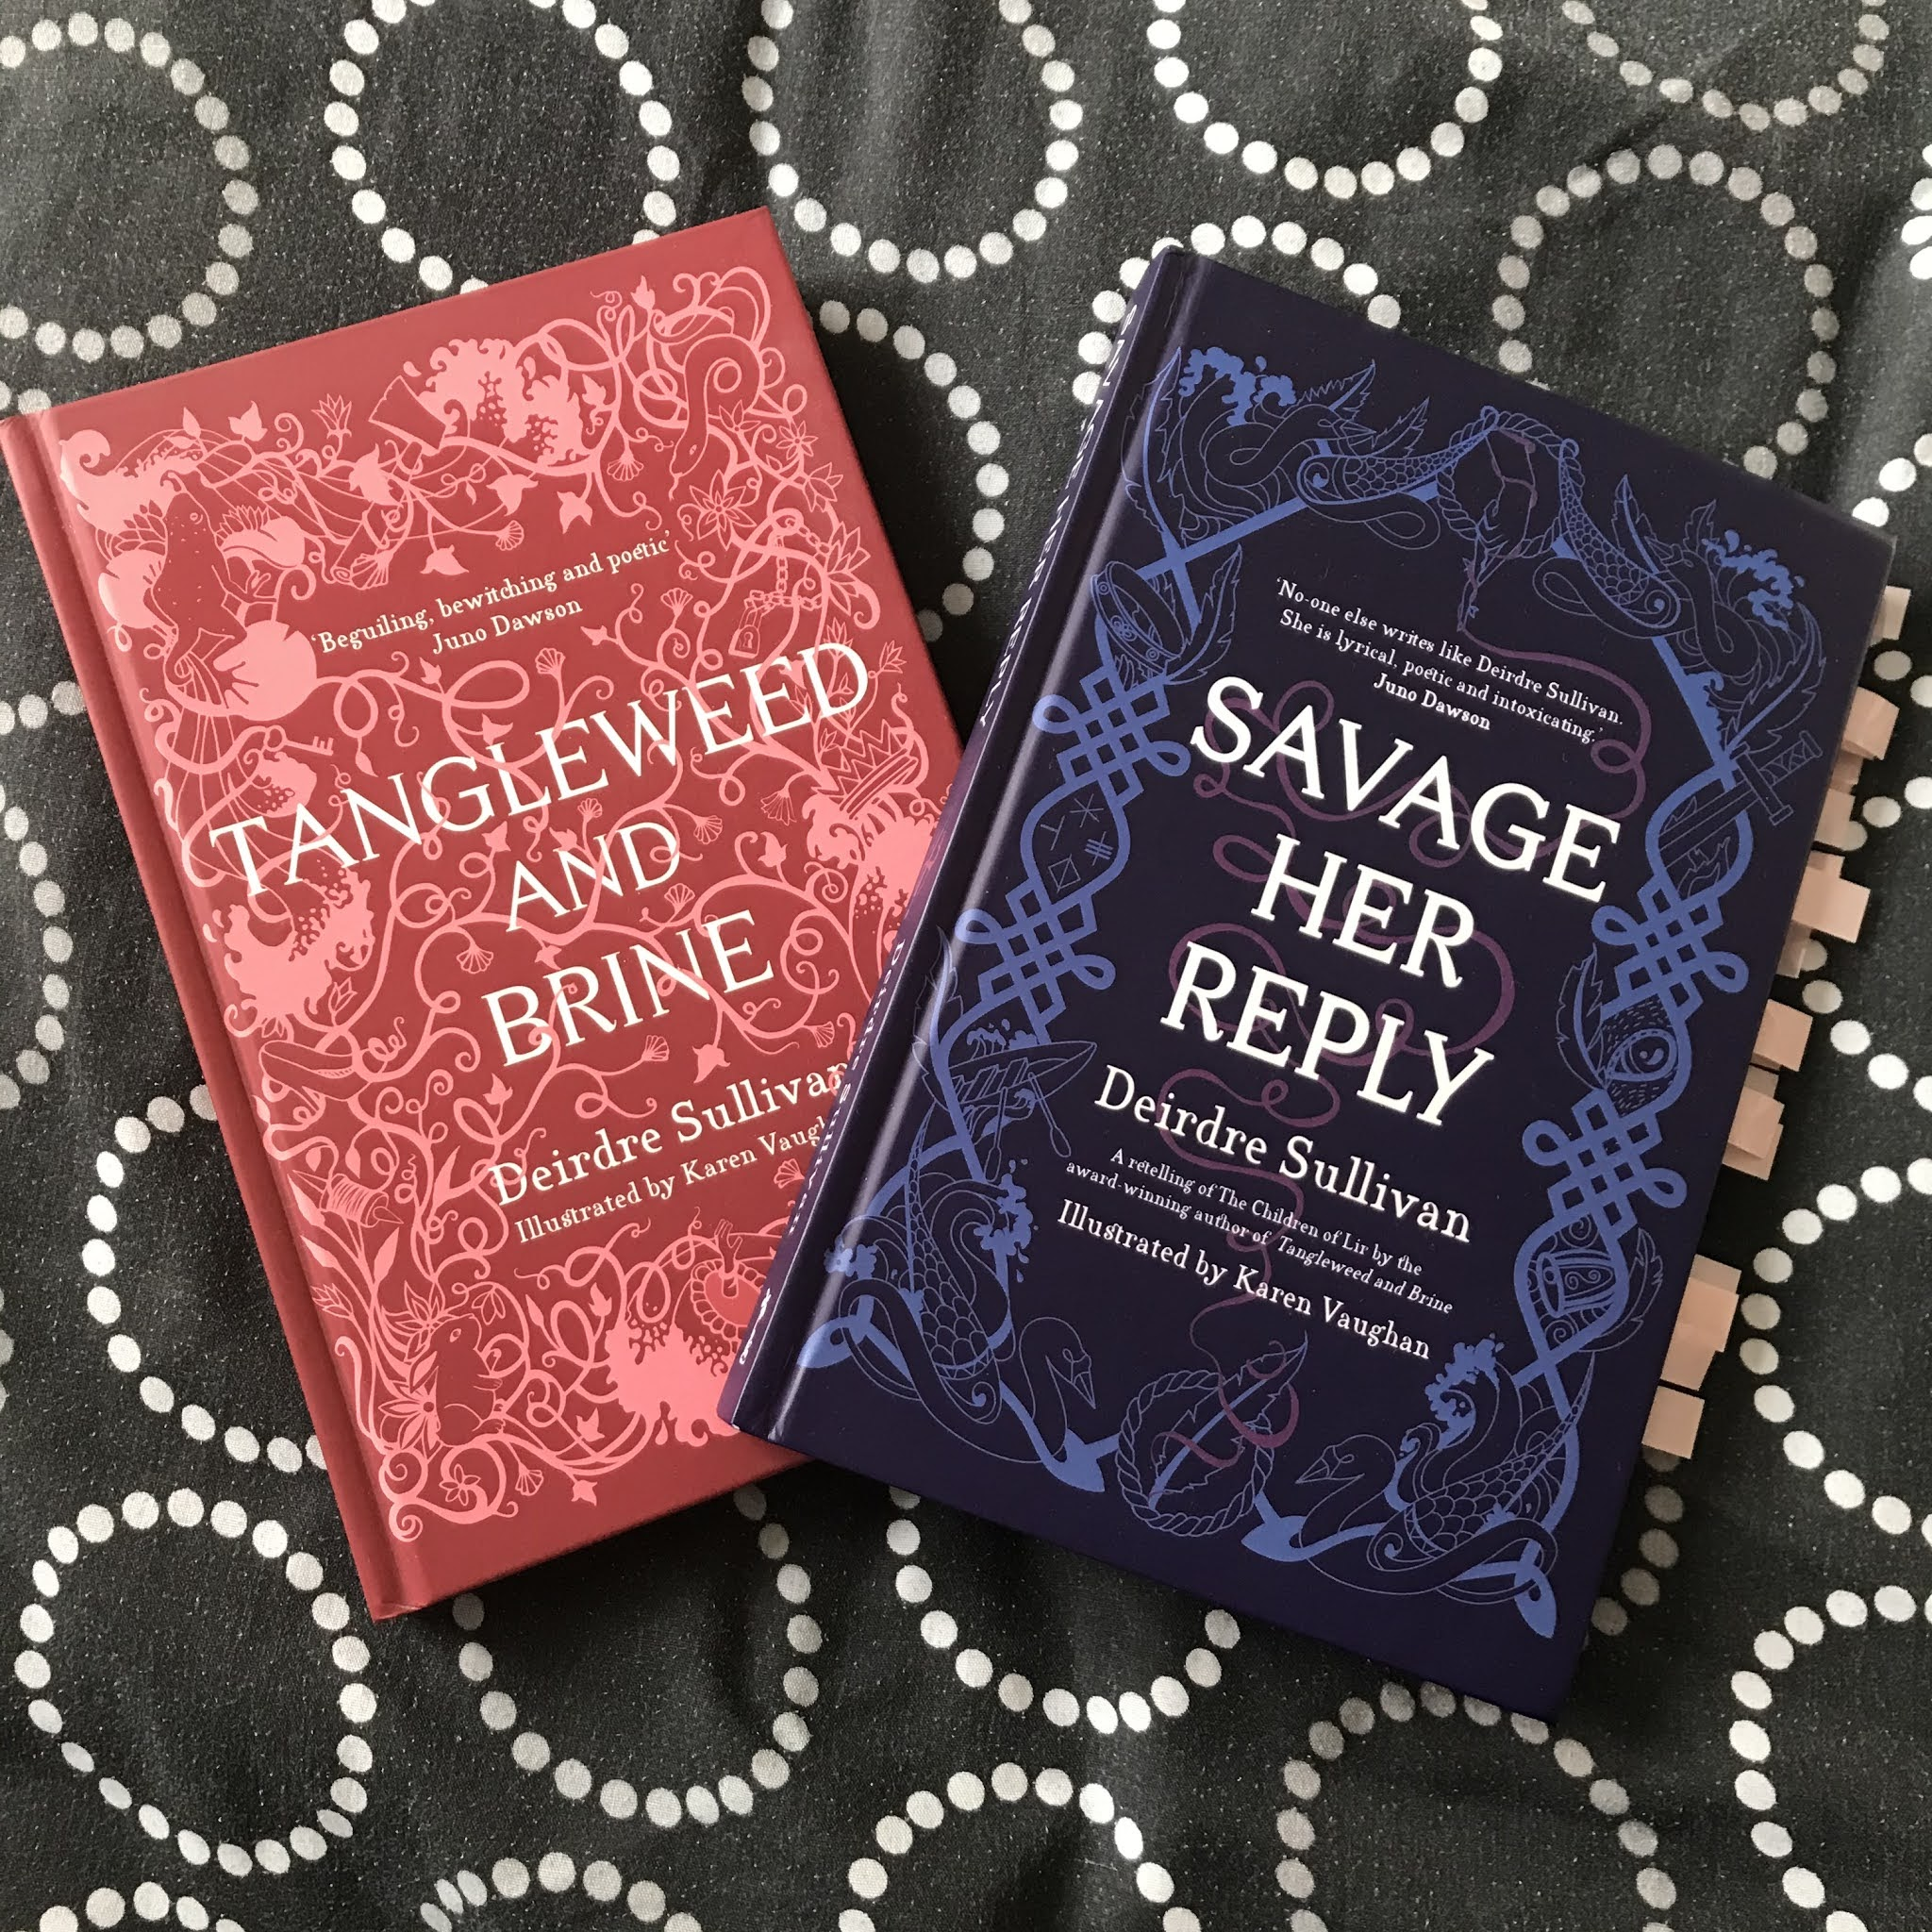 Tangleweed and Brine, and Savage Her Reply by Deirdre Sullivan